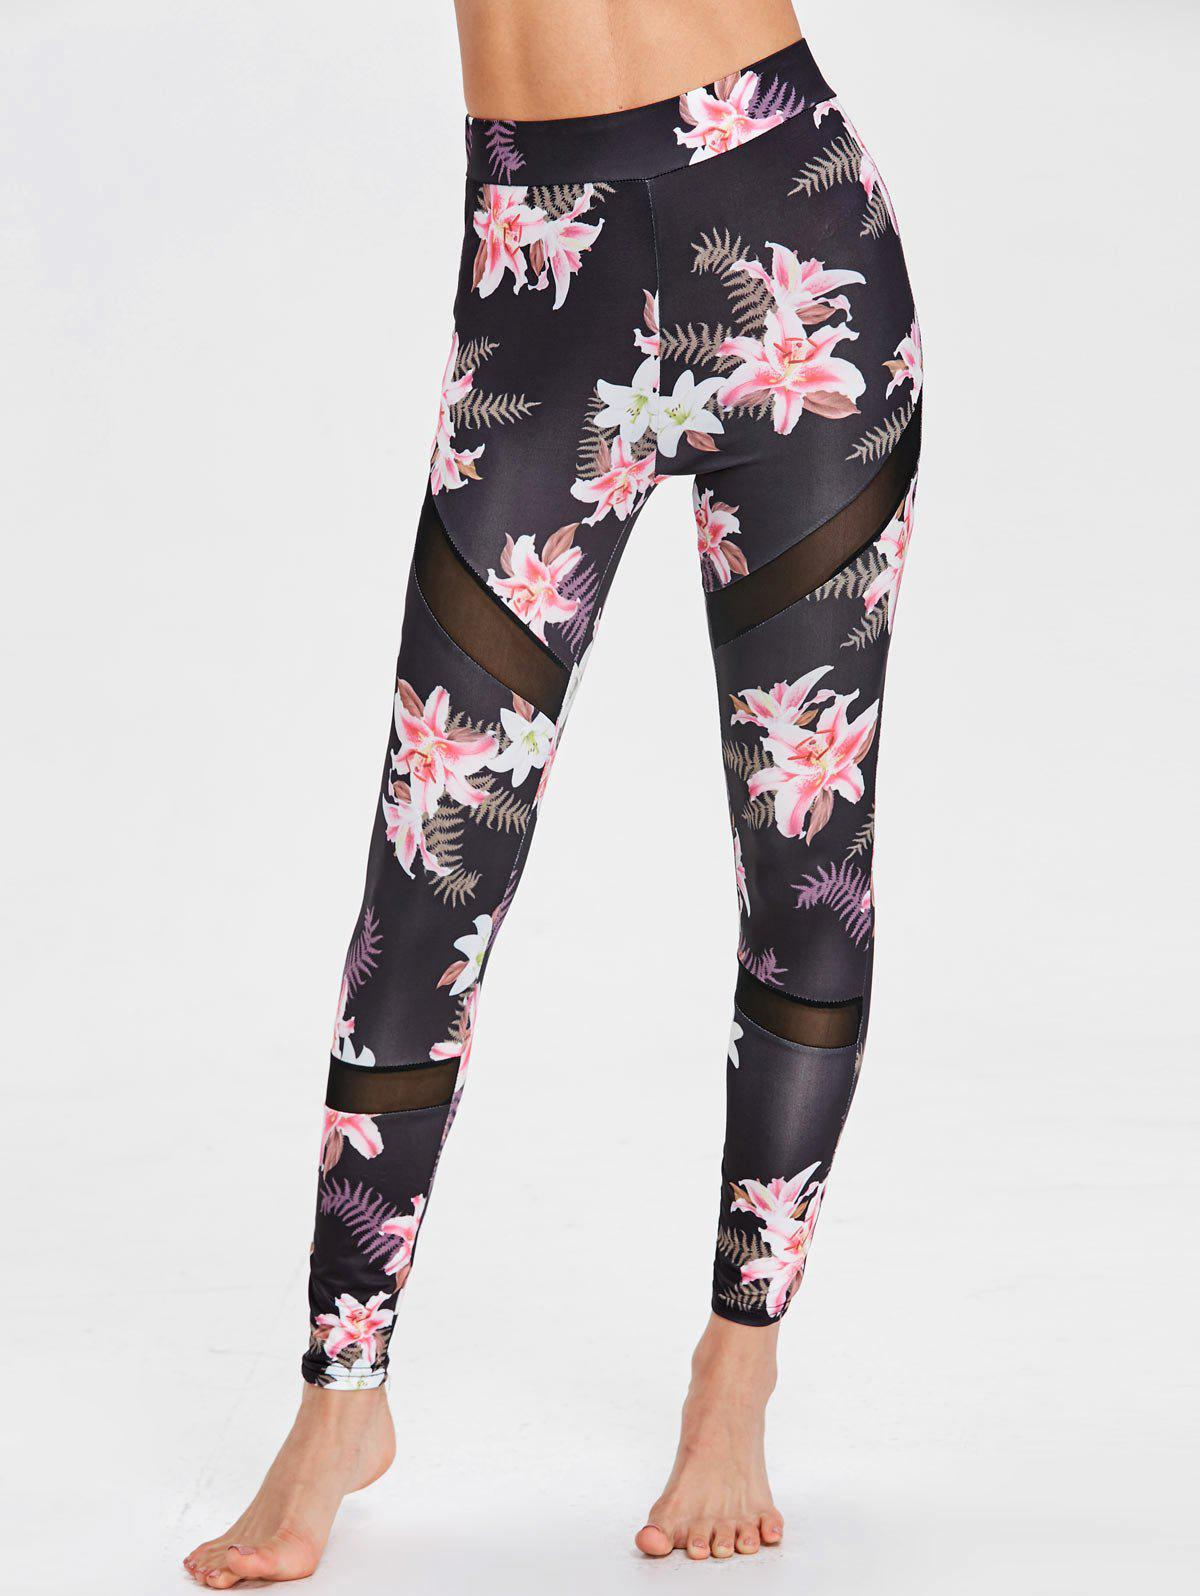 New Floral Print Mesh Insert Sports Leggings